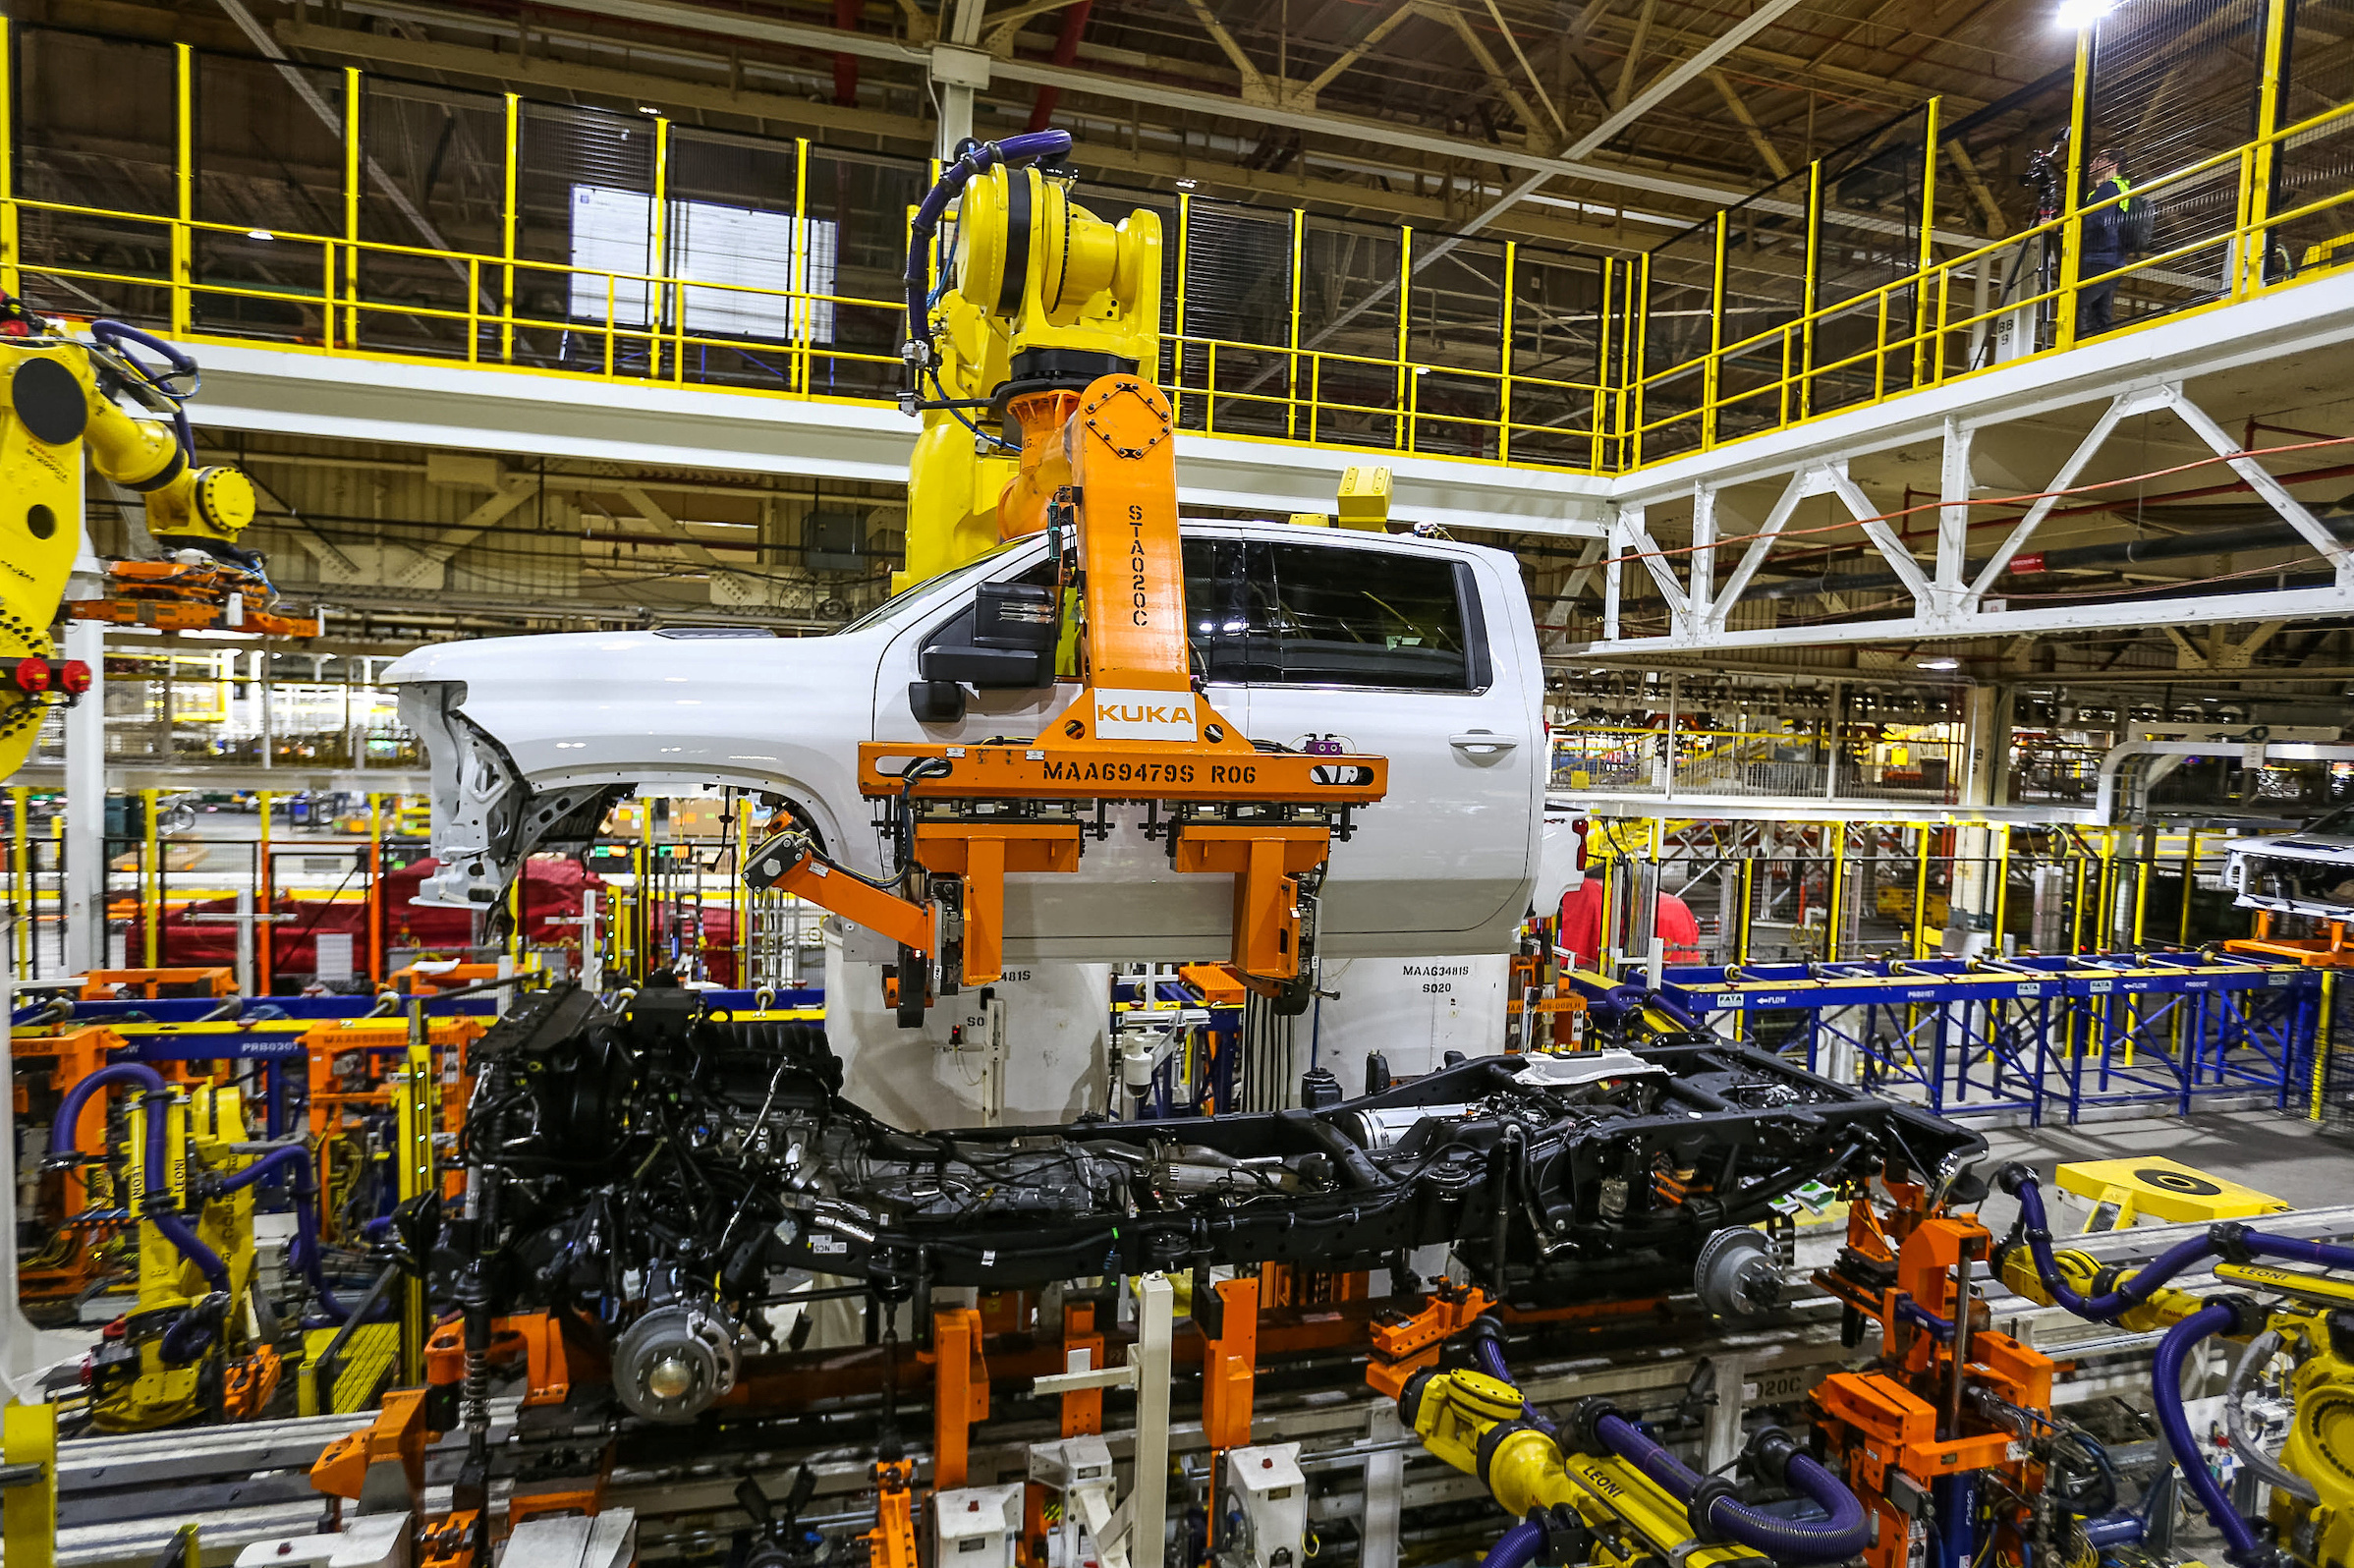 Robots swing a cab and bed into place for a new heavy duty pickup truck on the assembly line where Chevrolet Silverado trucks are being built at General Motors Flint Assembly in Flint, Michigan, Jan. 30, 2019.